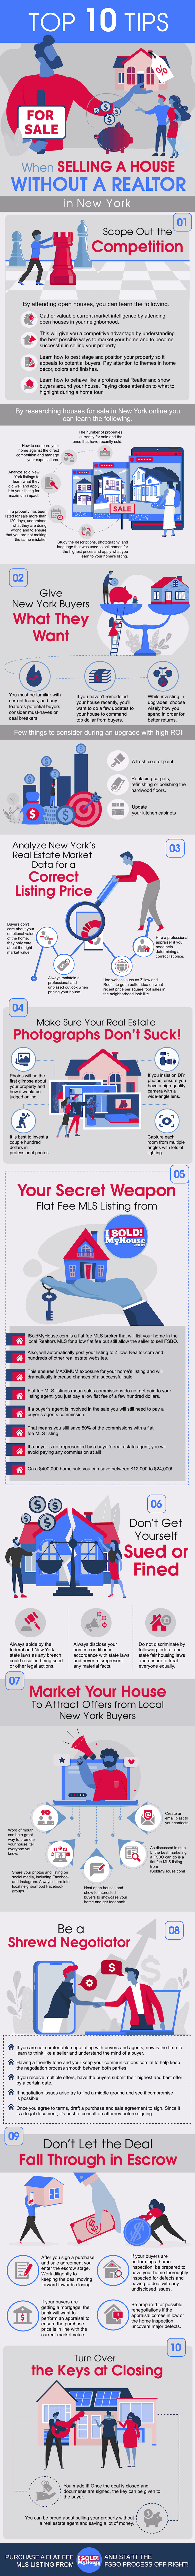 infographic of the 10 steps to sell a house in new york without an agent